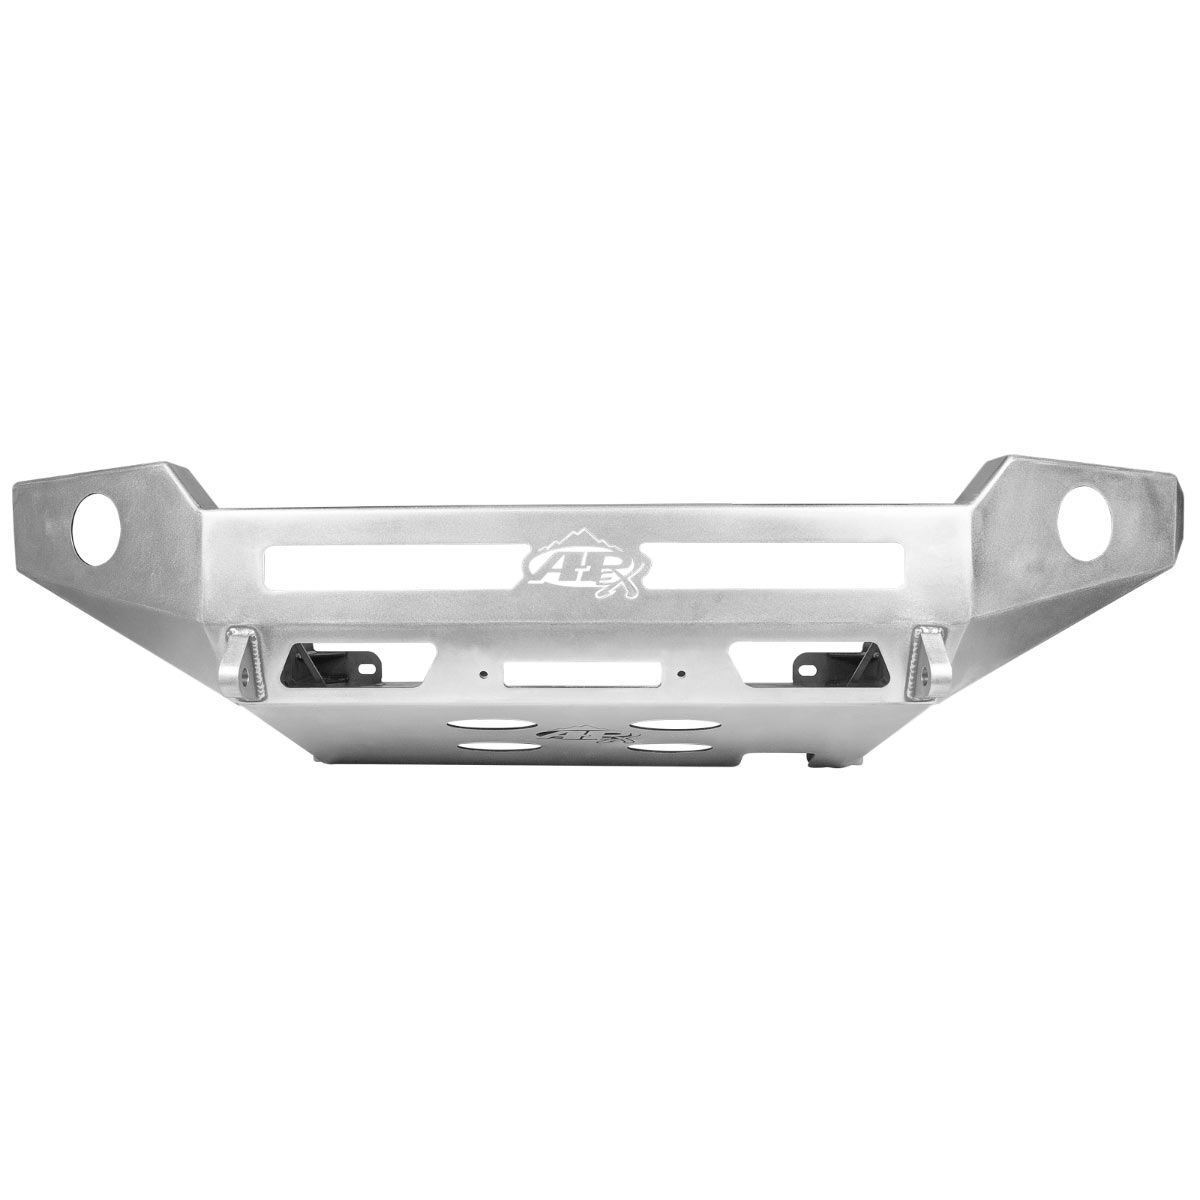 All-Pro Off-Road Tacoma APEXG3N Steel Front Bumper 16+